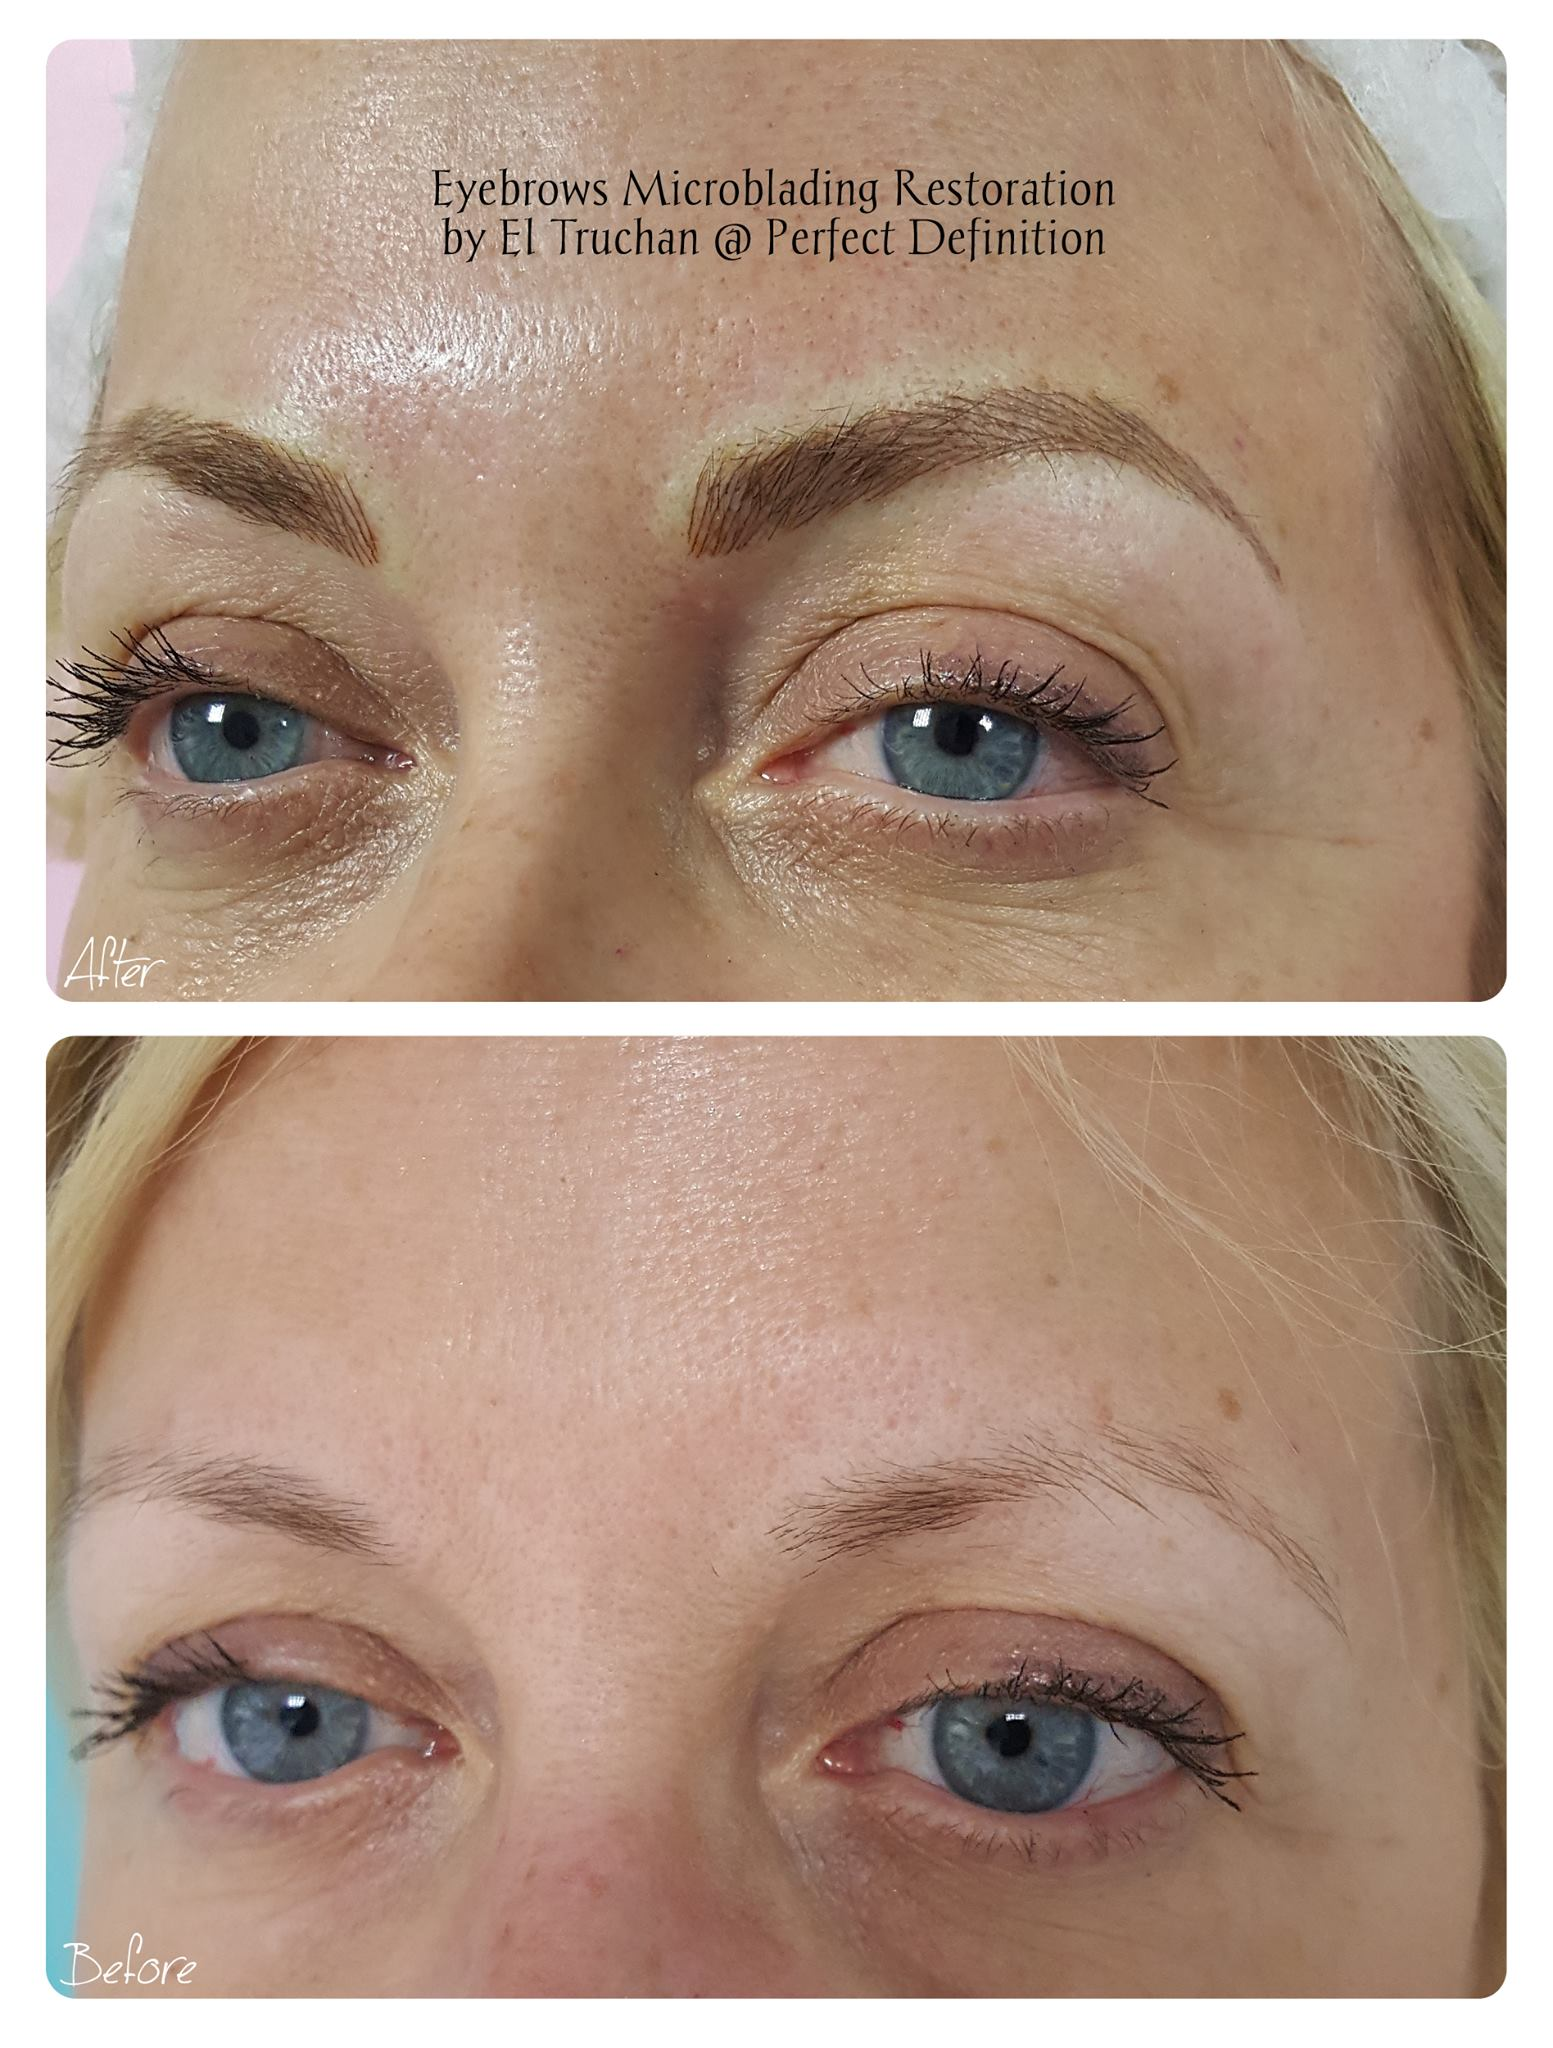 Eyebrows Microblading Restoration by El